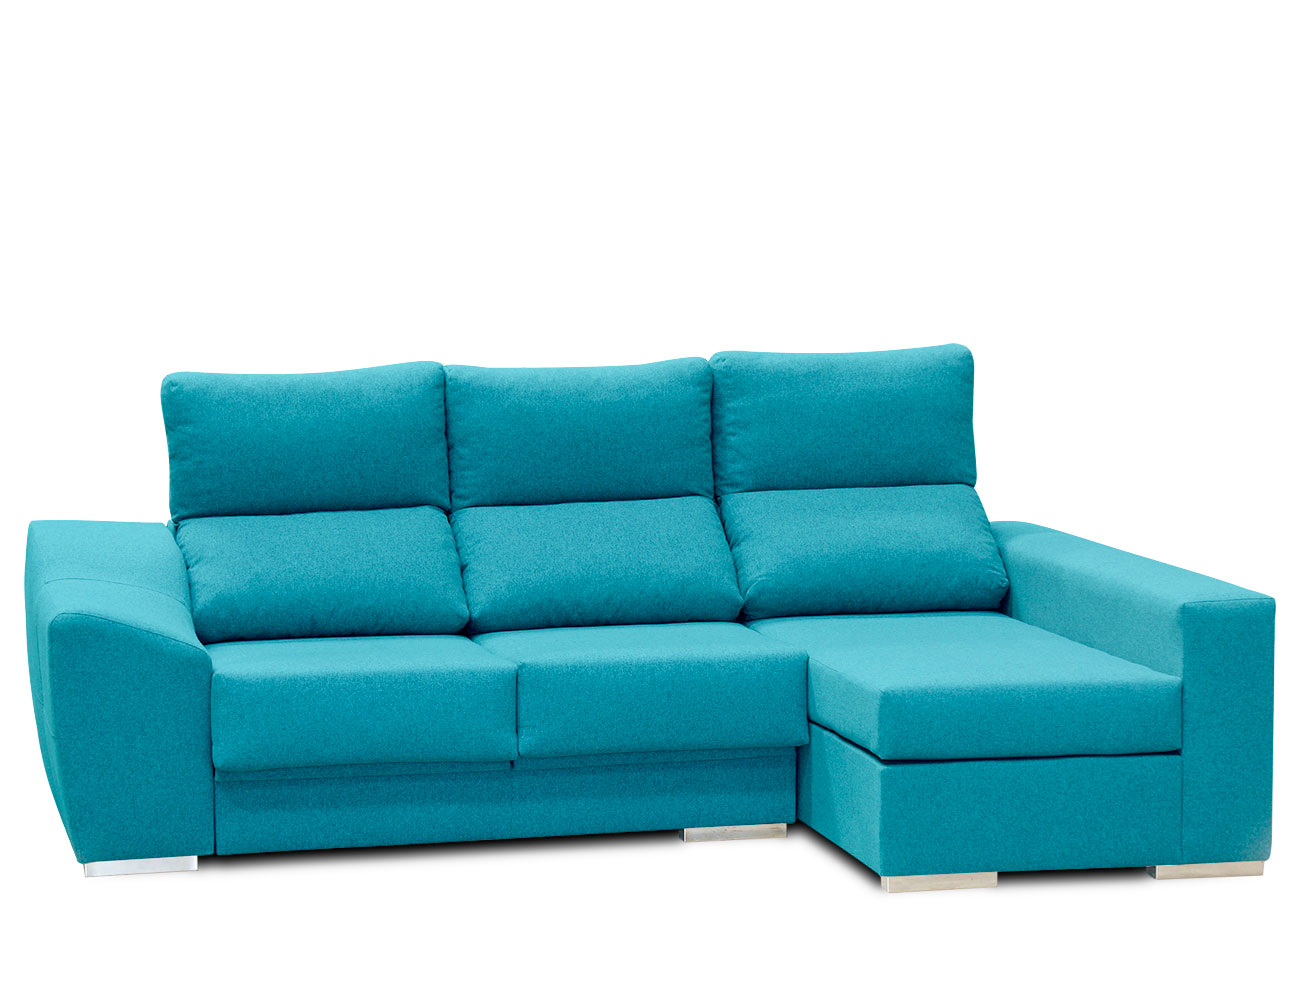 Sofa chaiselongue moderno turquesa 5